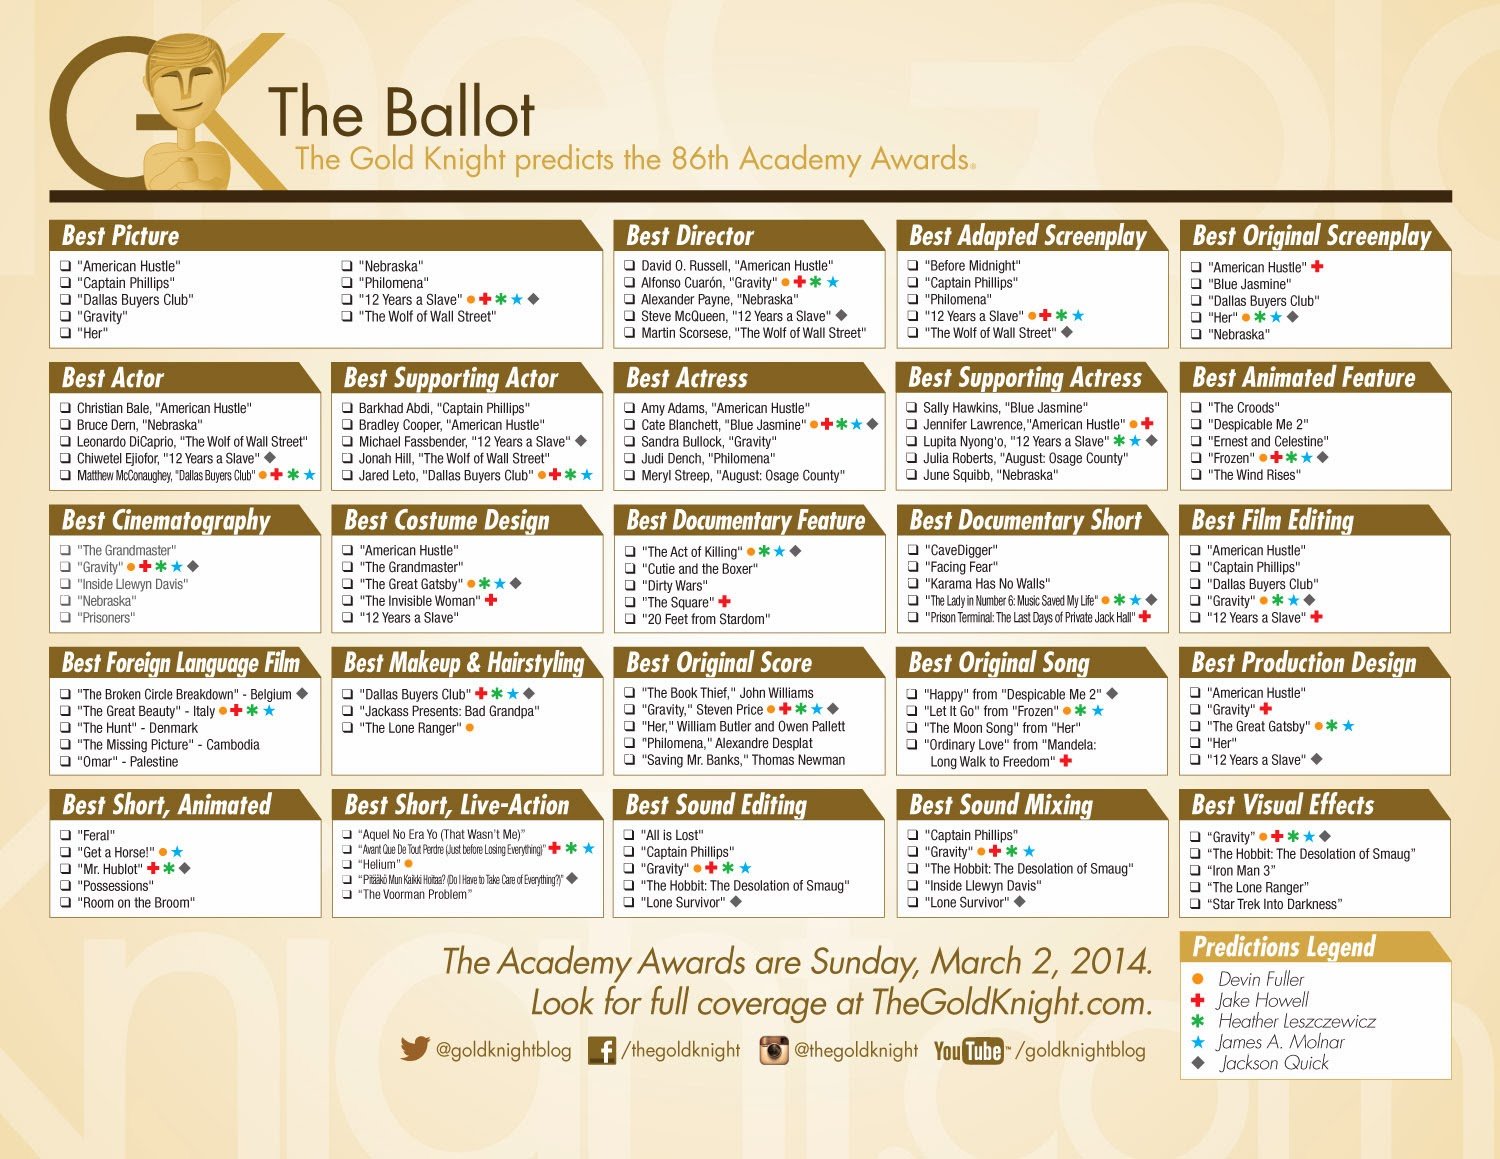 Printable Ballot For 2015 Oscars 2016 - Oscars 2015: Printable Ballot ...